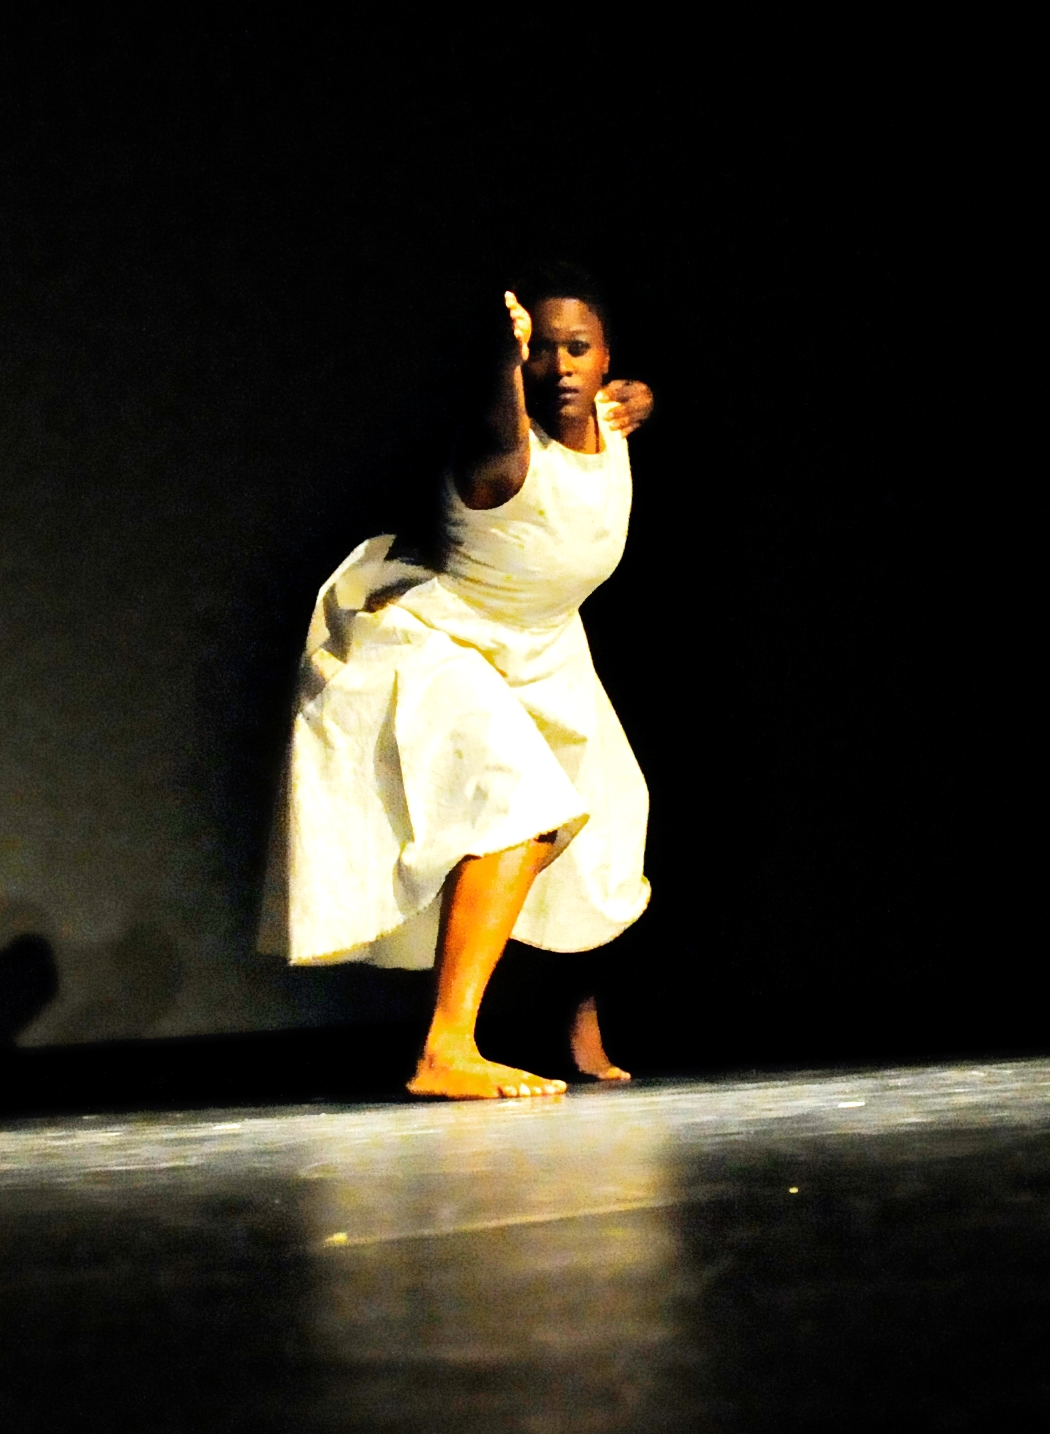 #TroubleFree (2012)  Dancers: Anika Marcelle Dance Show: COCO Dance Festival 2012 Photography: Karen Johnstone  Location: Little Carib Theatre, Port-of-Spain - Trinidad